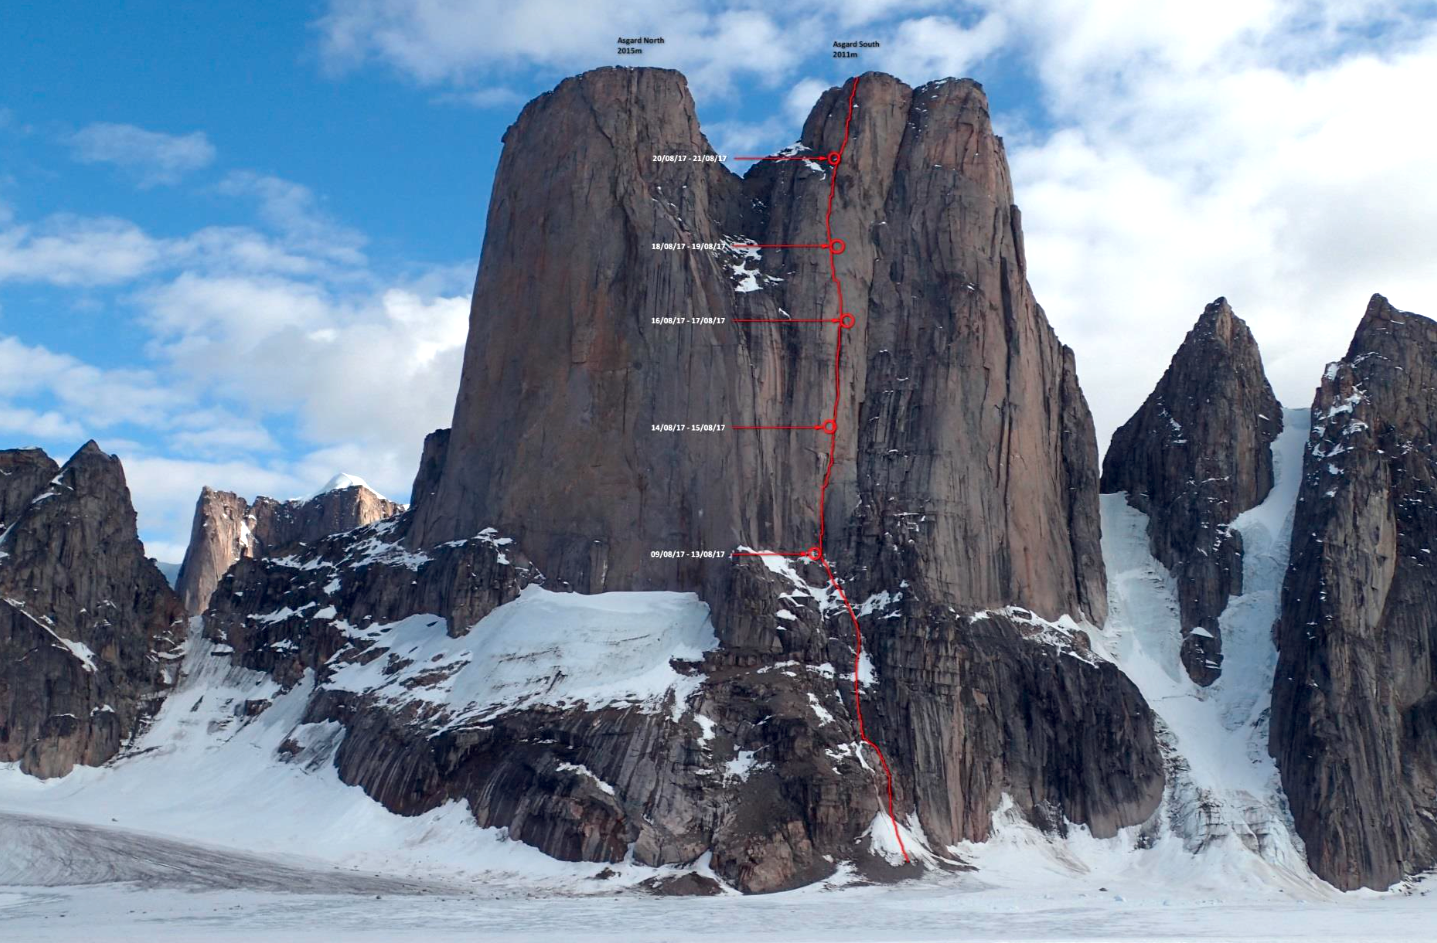 The new route Ratatoskr on the northwest face of Mt. Asgard's south tower. The route starts in the same vicinity as Charlie Porter's 1975 solo ascent of the north tower but is the first known route up the prominent buttress above.